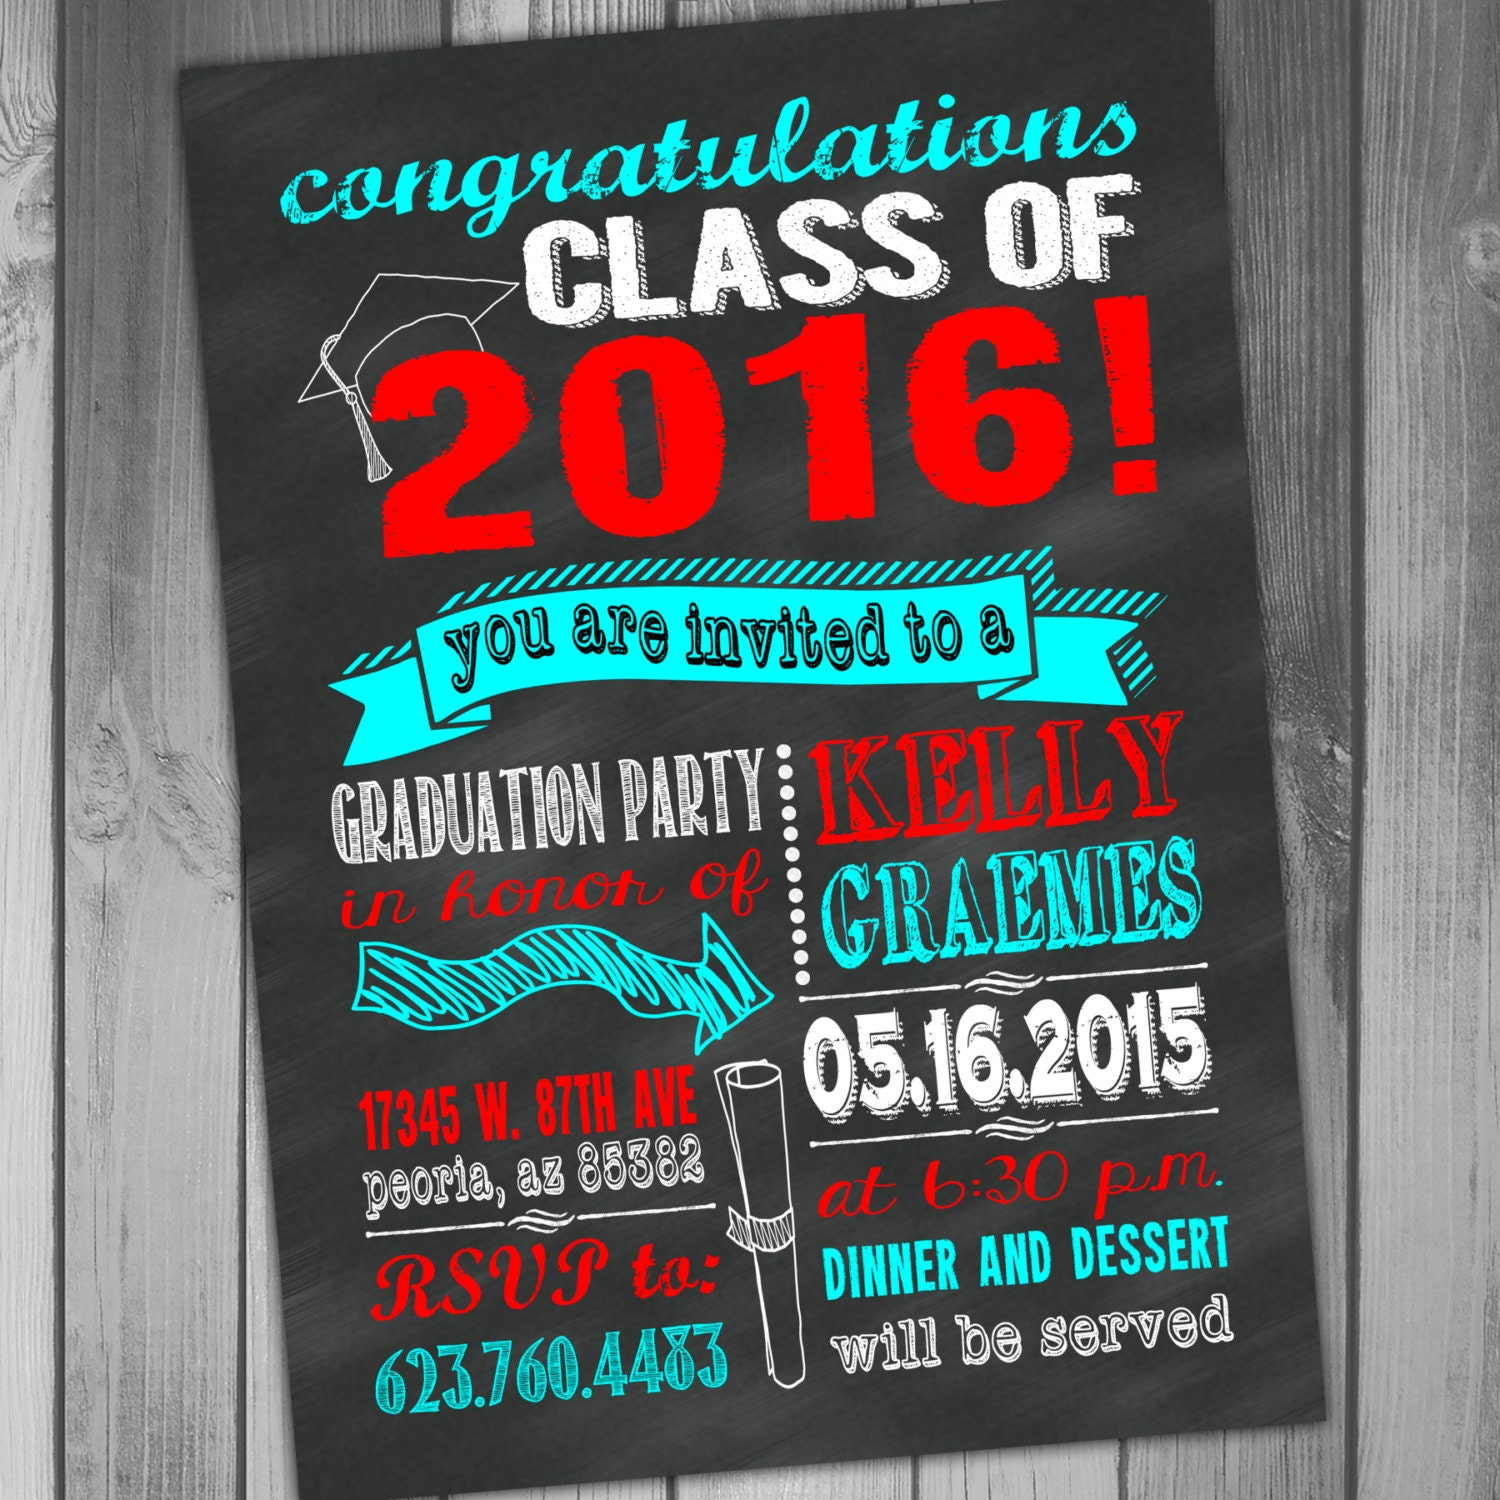 graduation invitation chalkboard graduation party high school, invitation samples